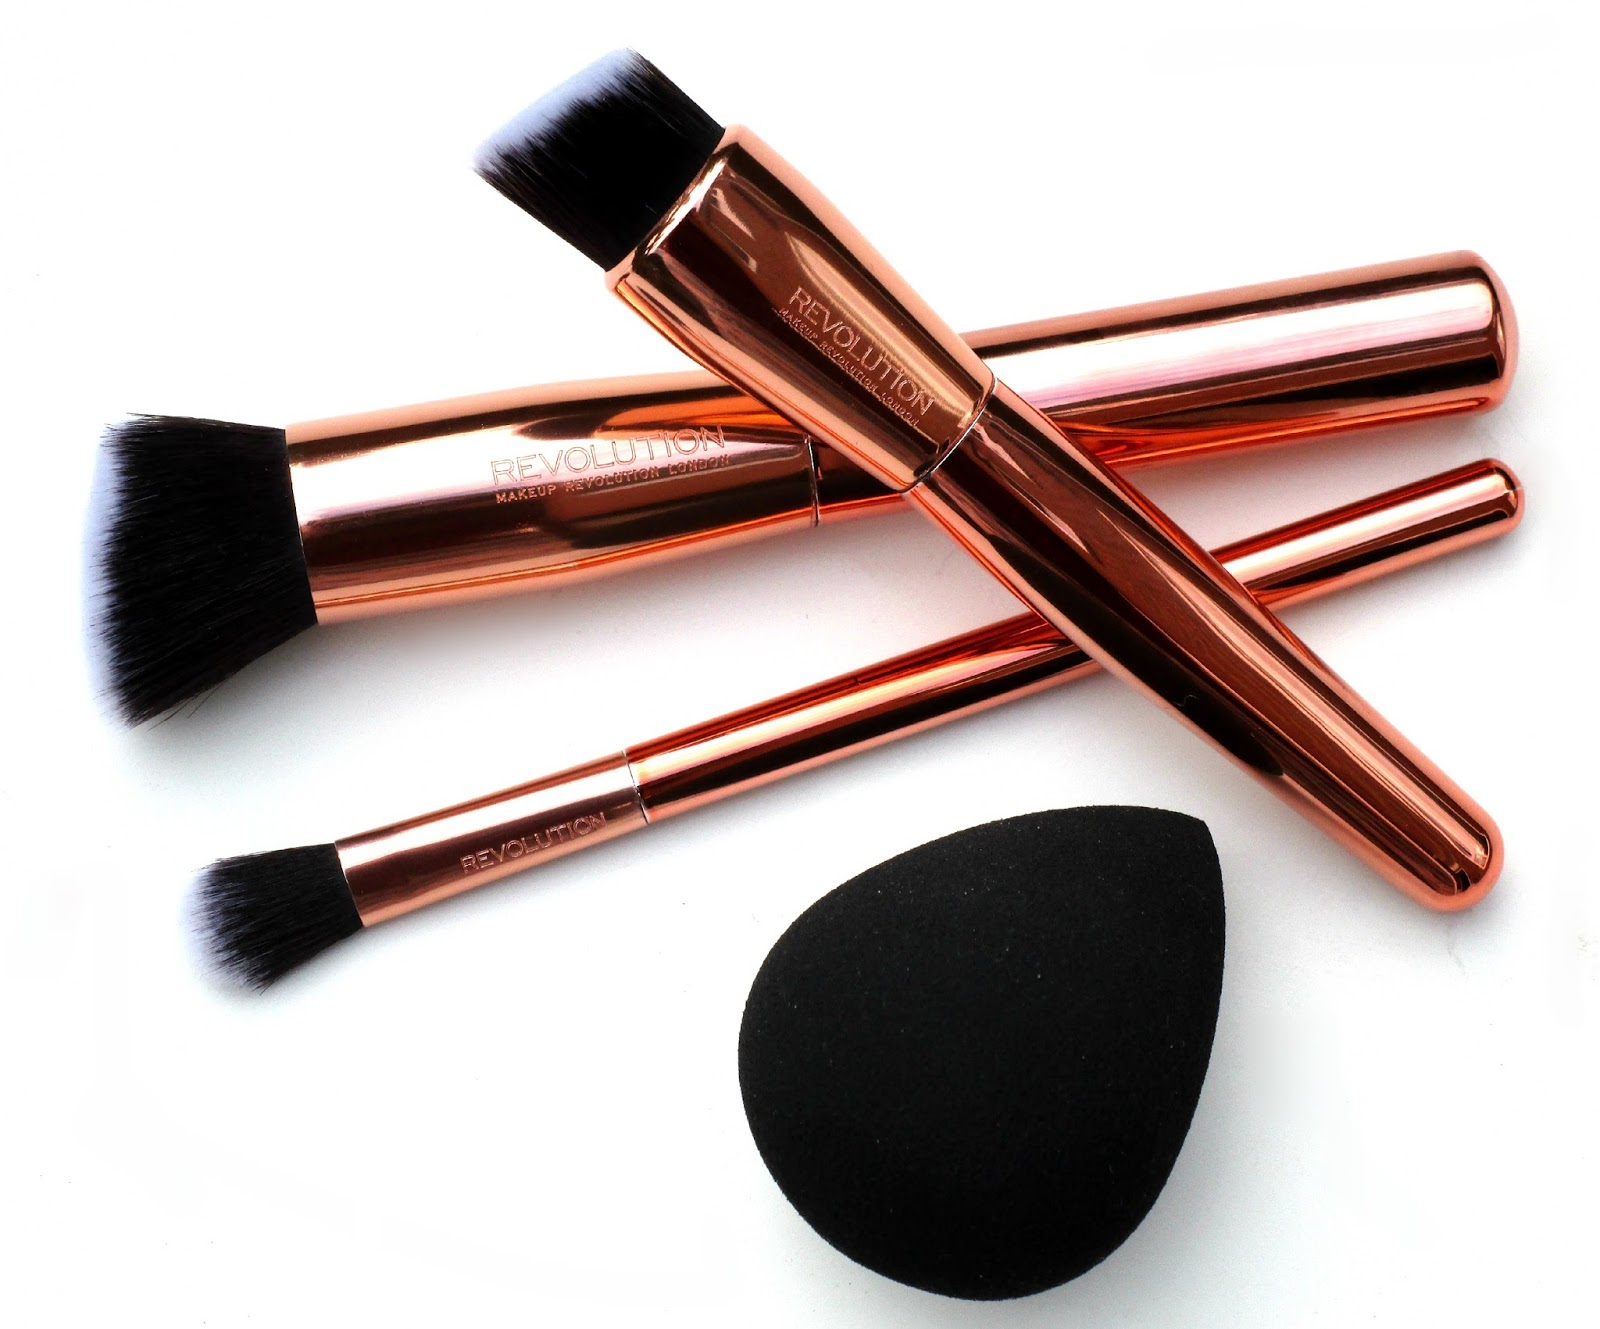 Makeup revolution brushes rose gold